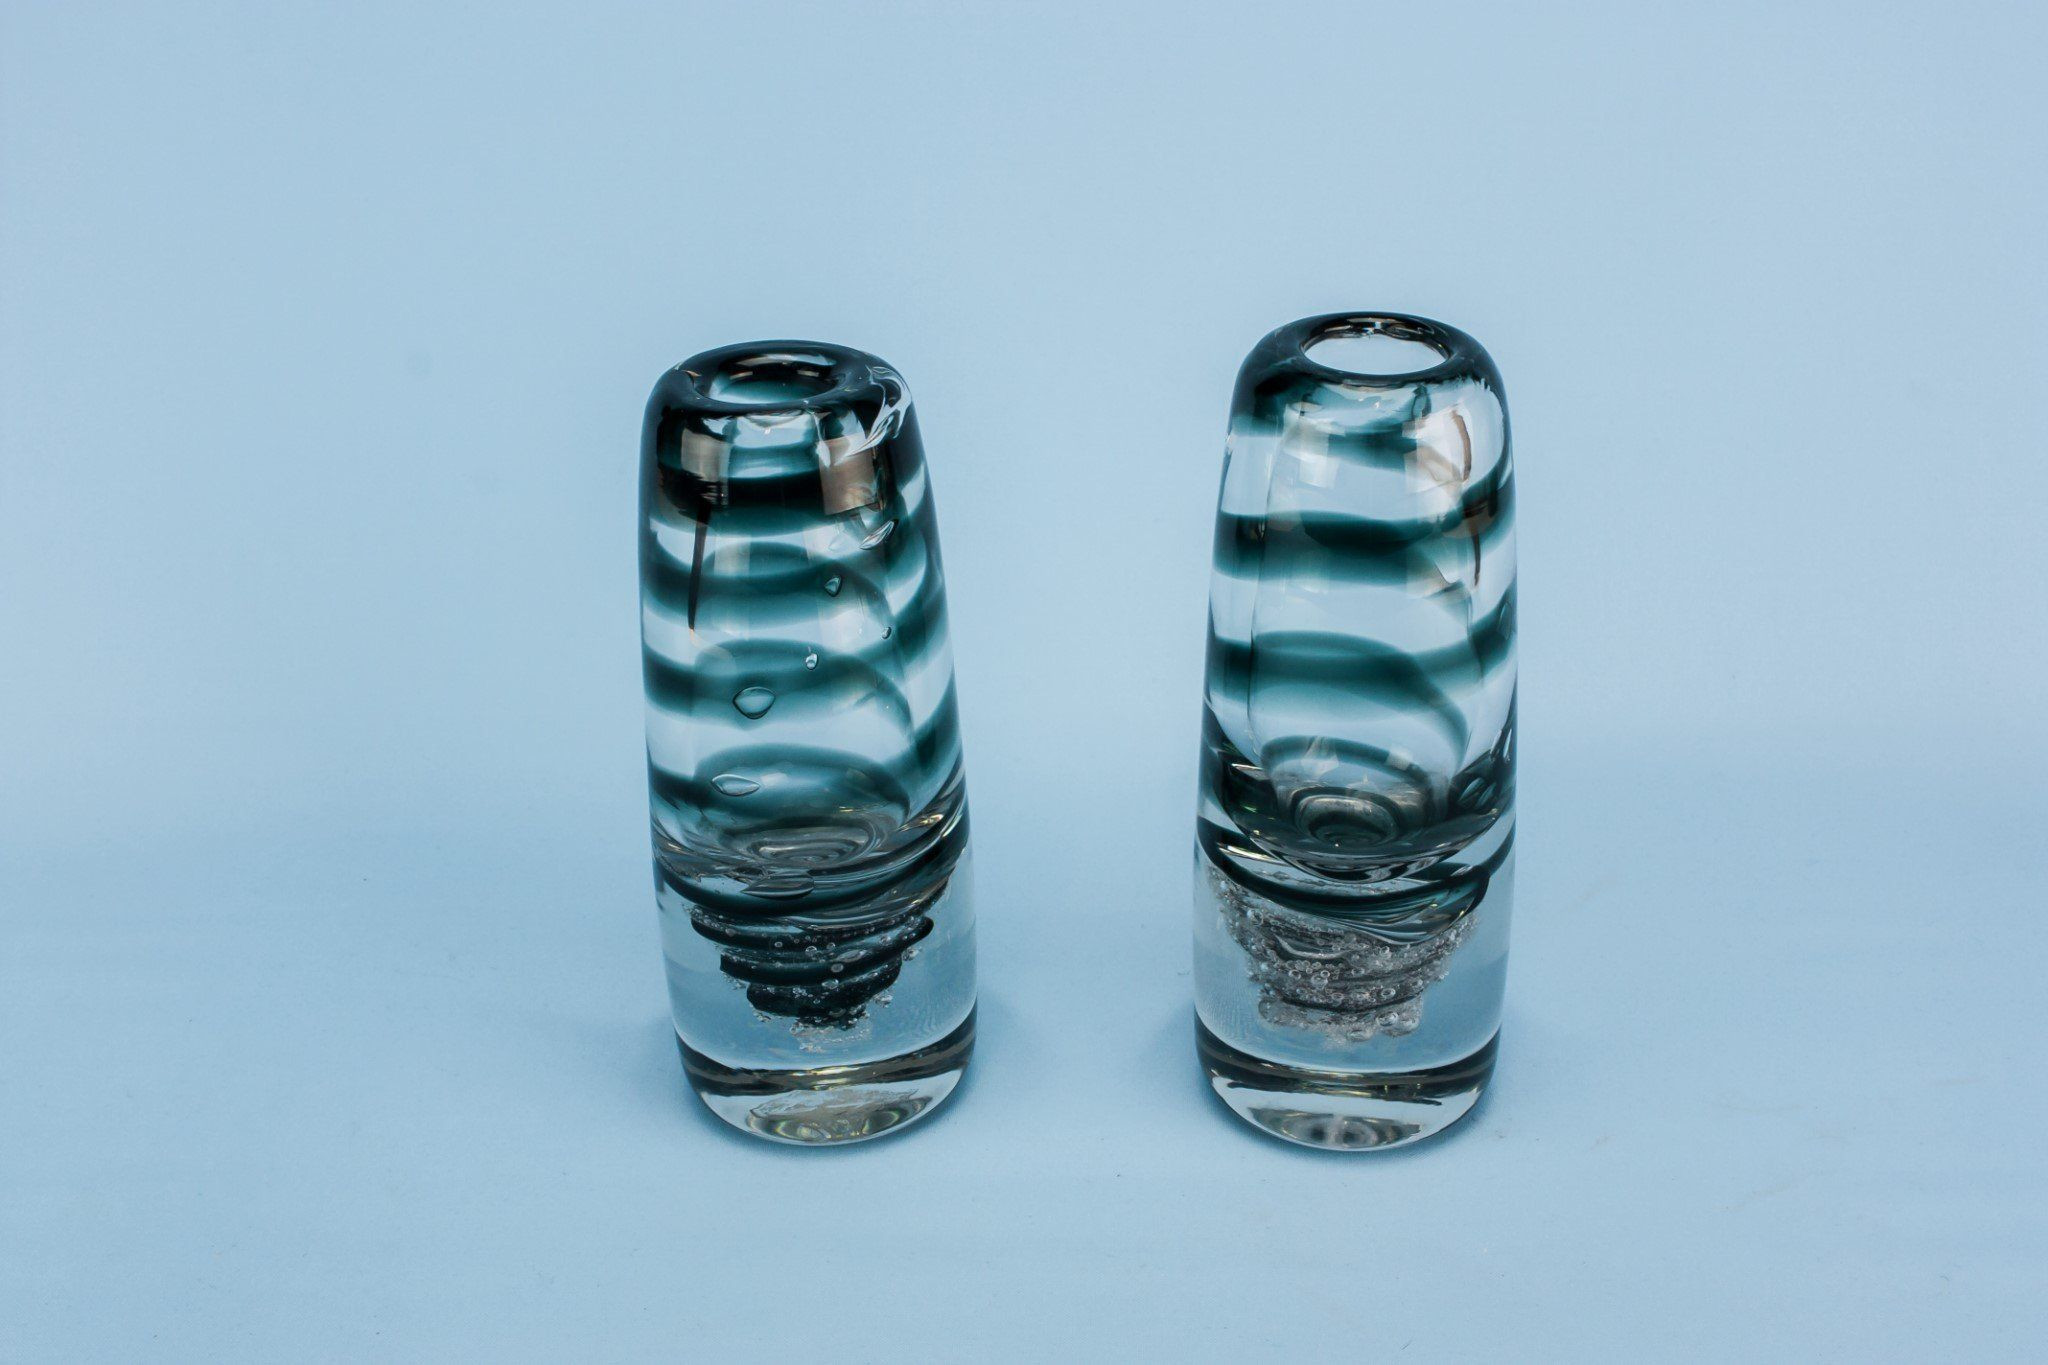 clear glass balloon vase of 18 mid century glass vase the weekly world regarding 2 glass vases late 20th century